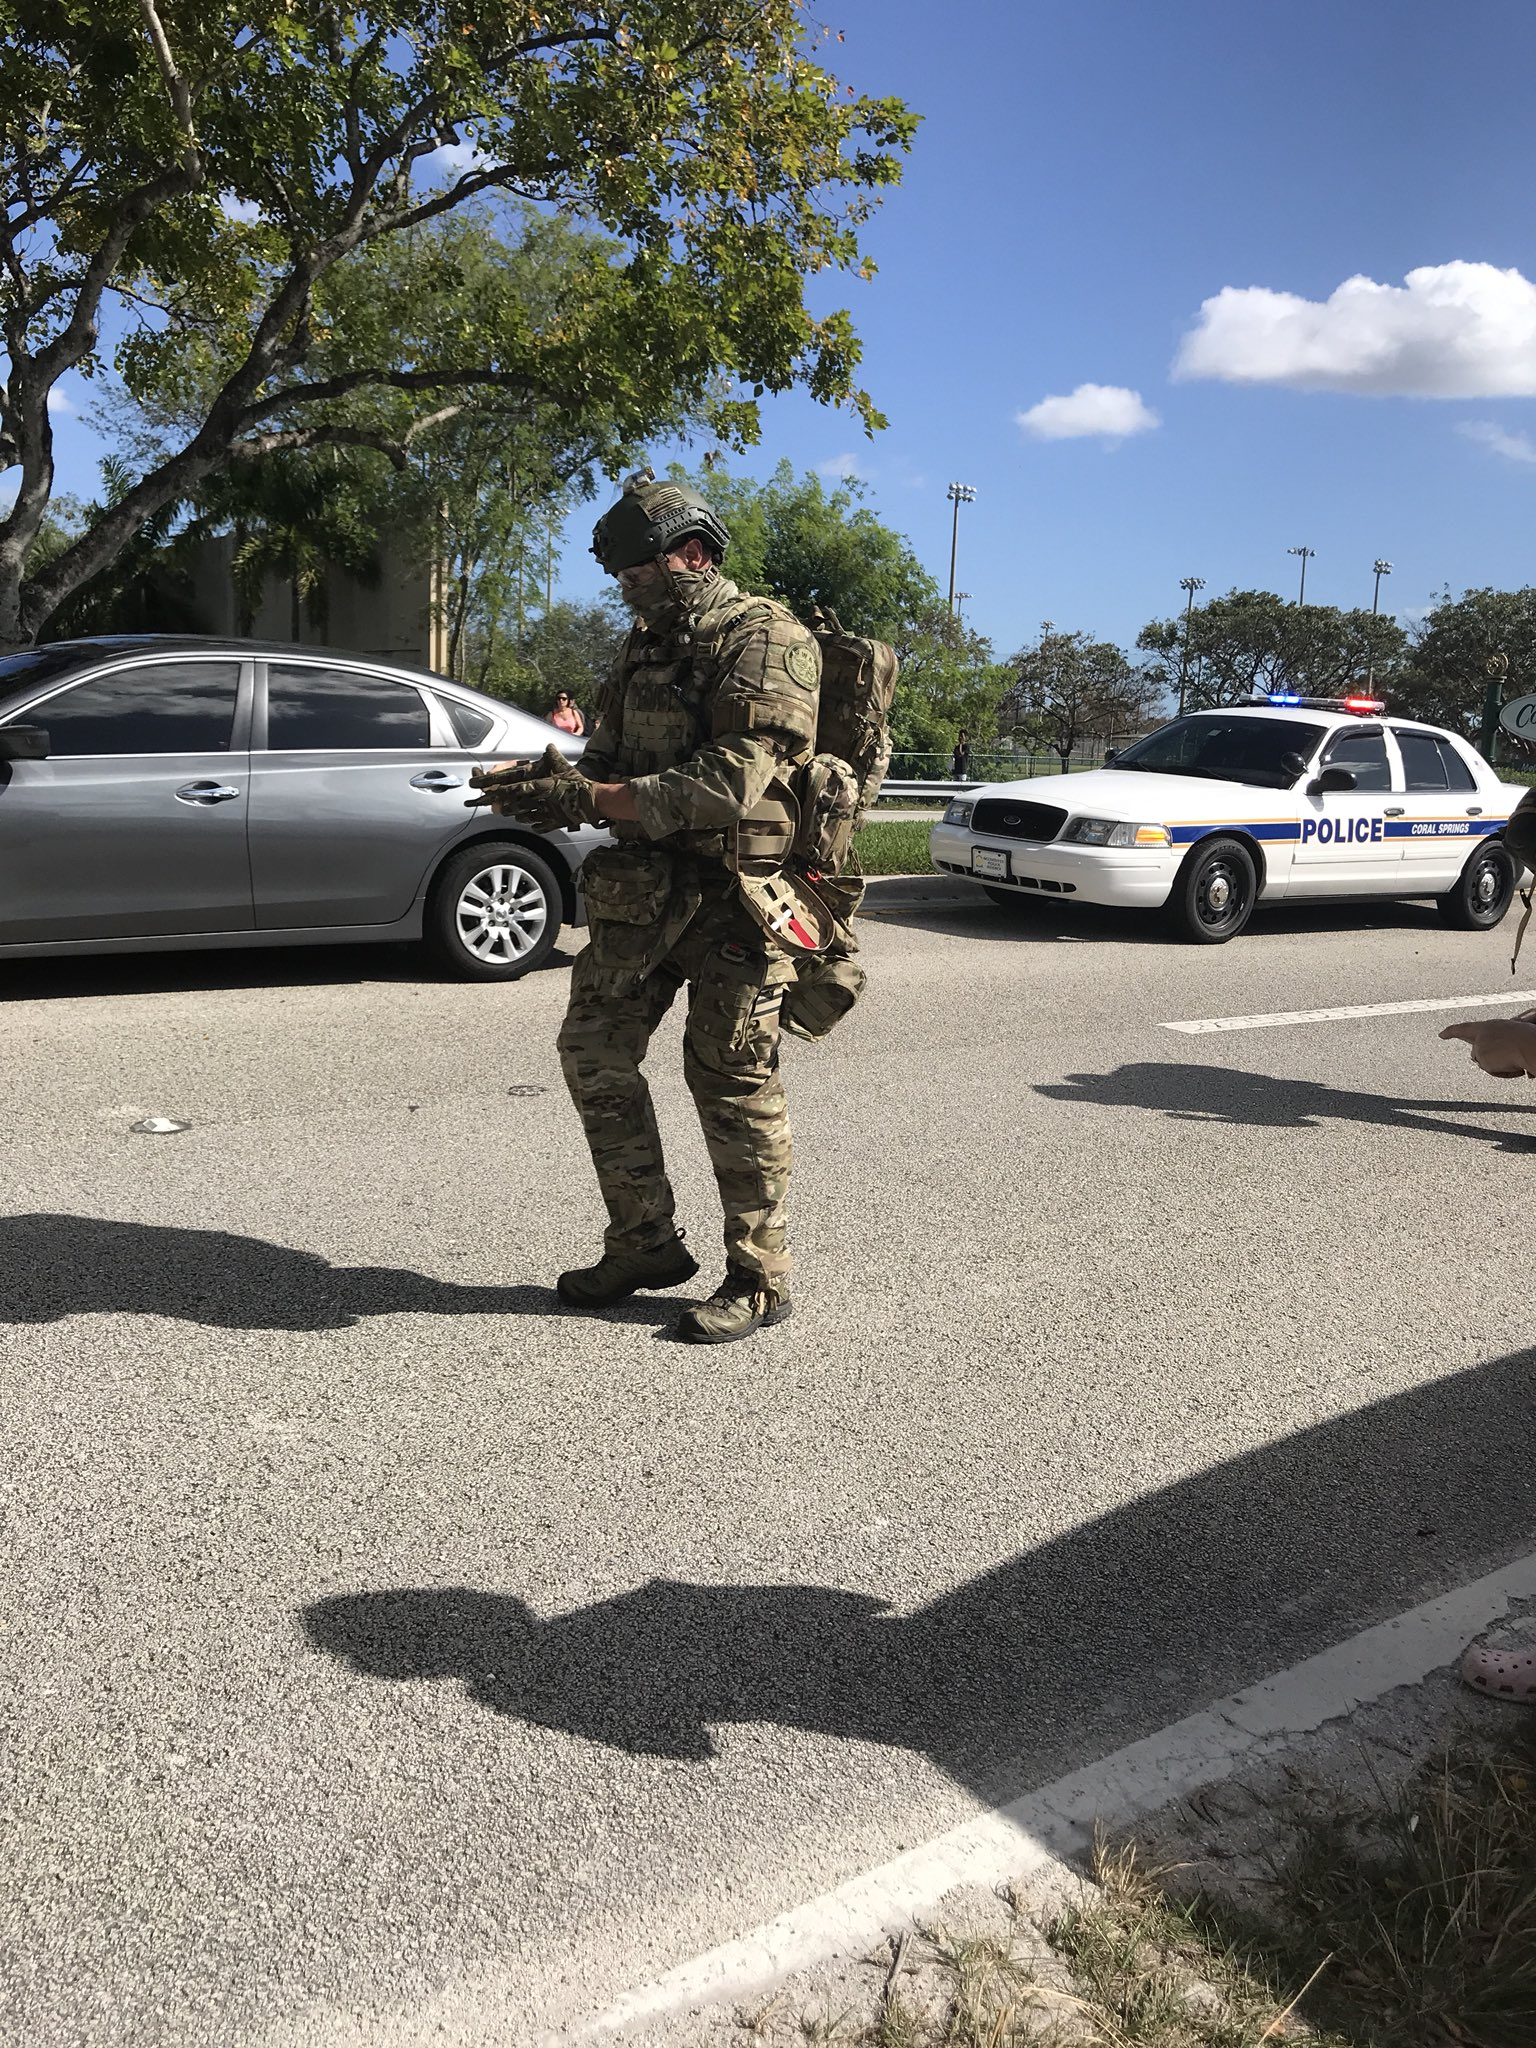 "<div class=""meta image-caption""><div class=""origin-logo origin-image kgo""><span>kgo</span></div><span class=""caption-text"">Photos show a police response to reports of shots fired at a Florida high school. (grumpyhaus/Twitter)</span></div>"